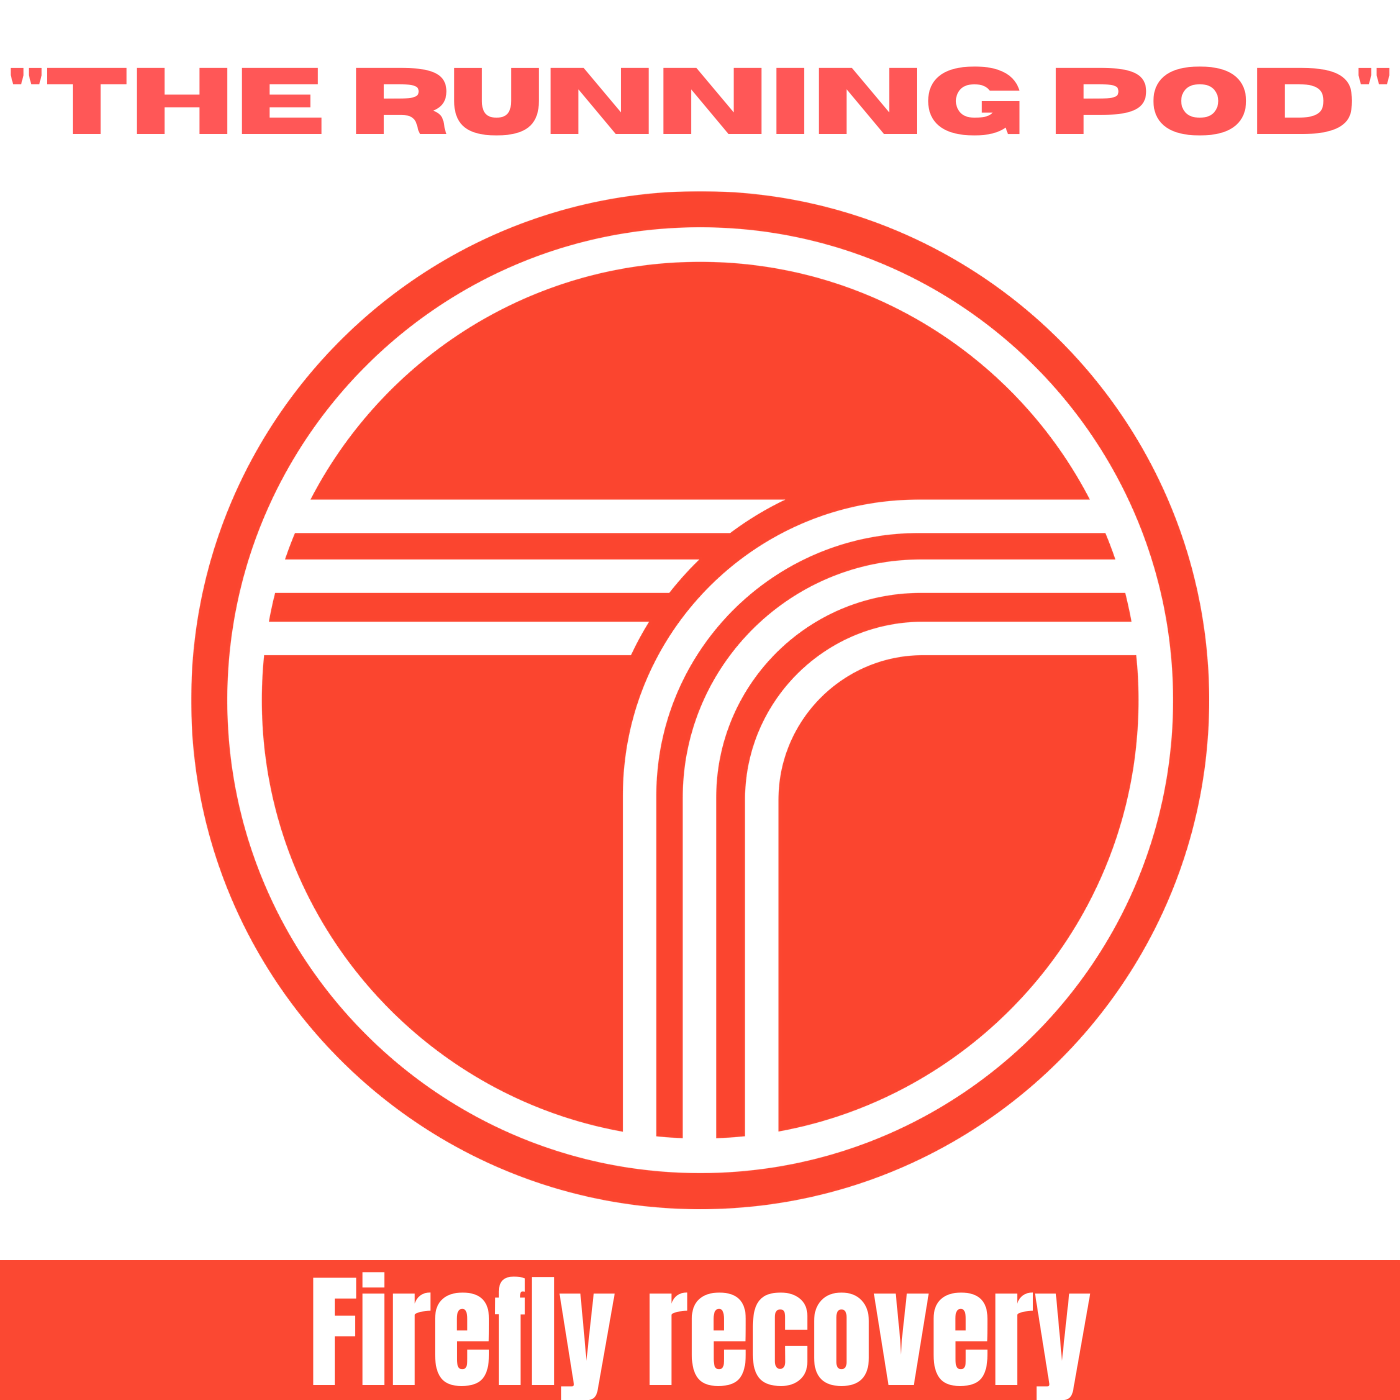 The best ways to recovery Firefly recovery